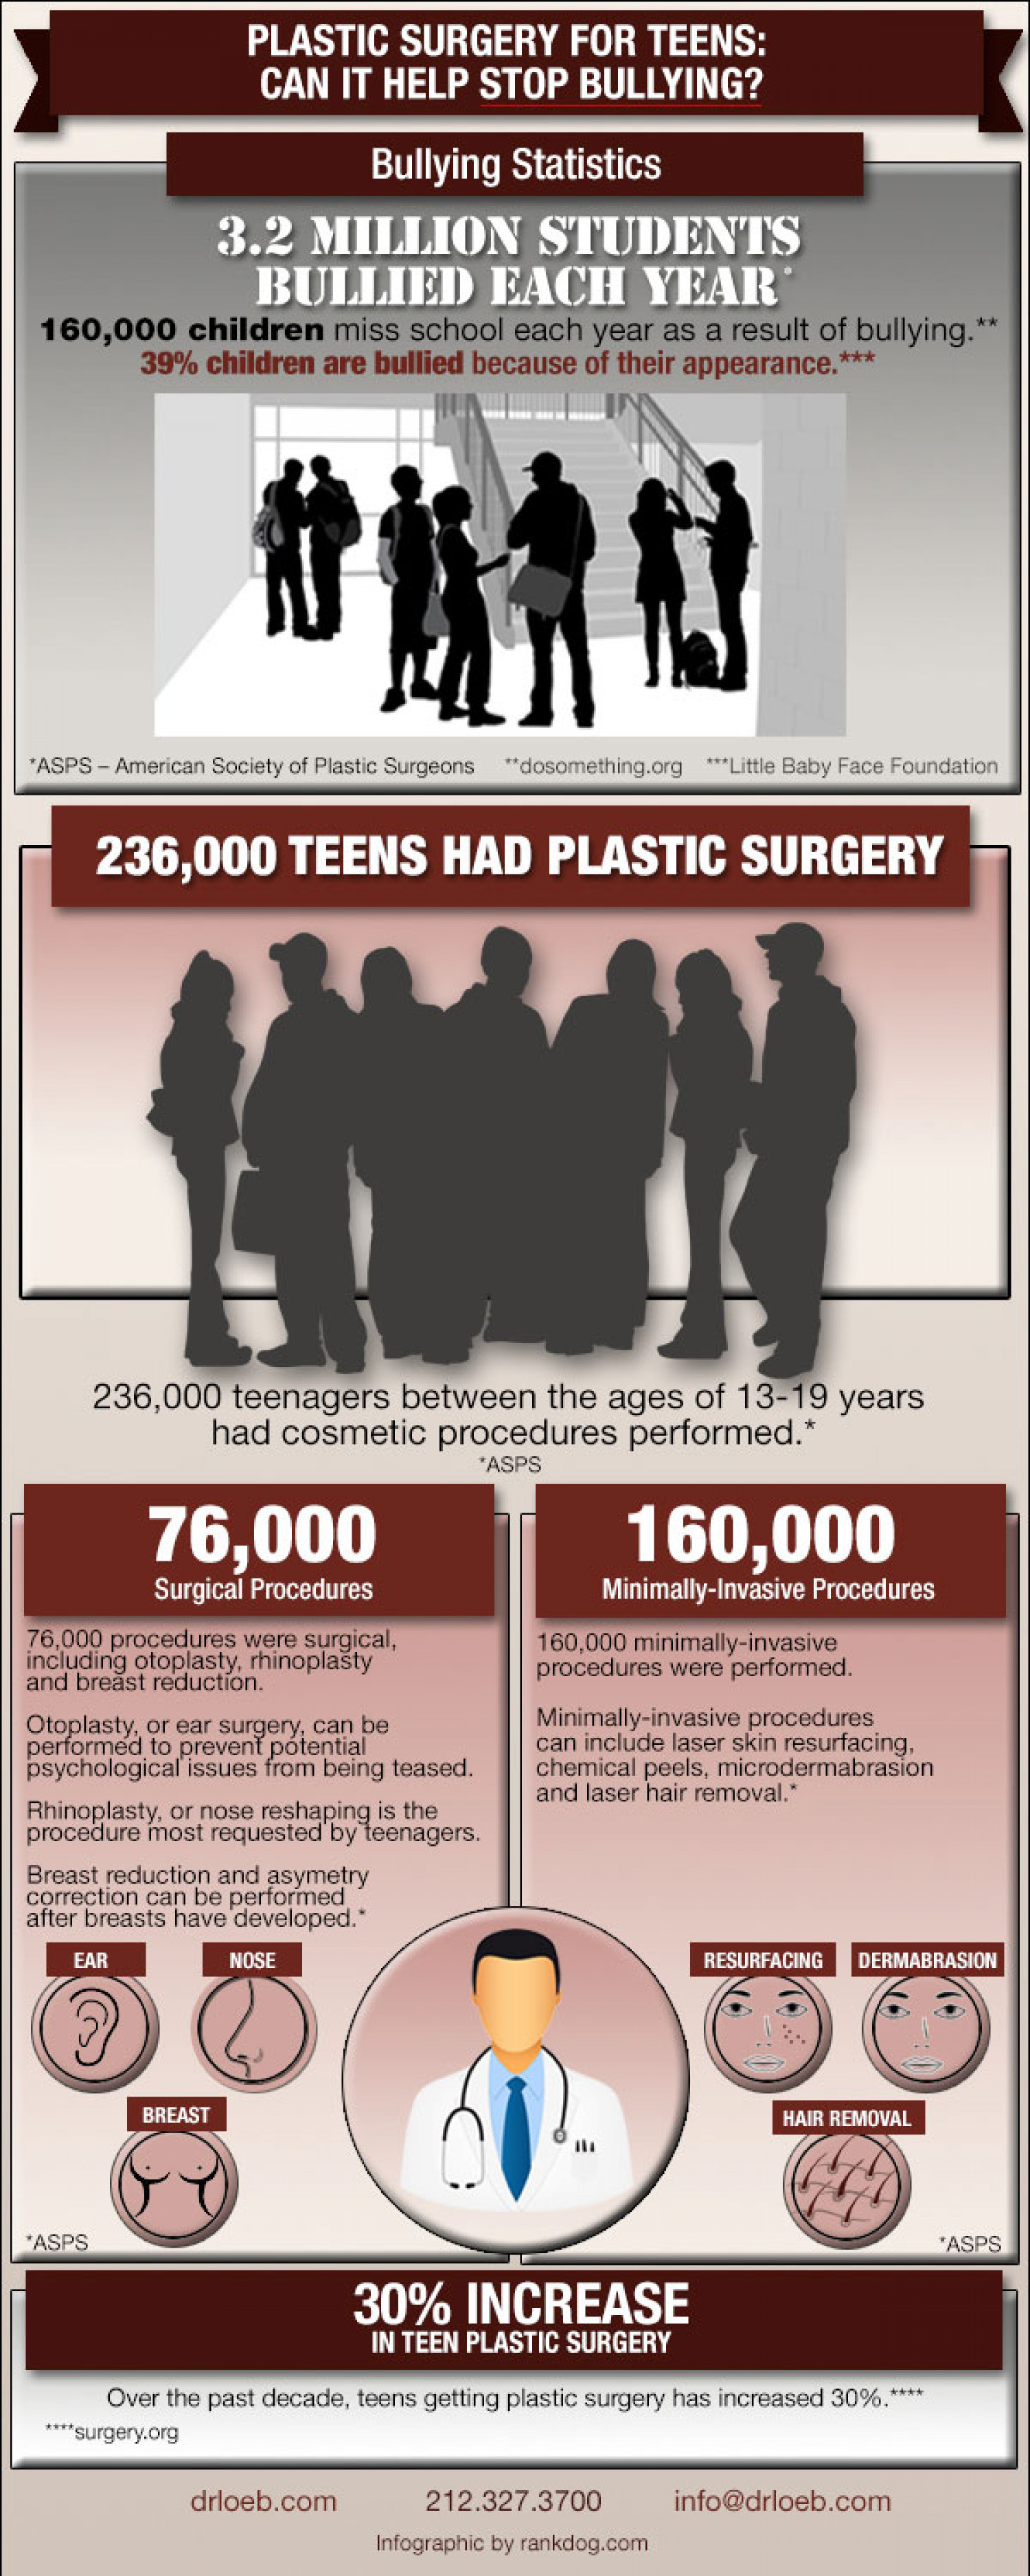 Teens, Bullying, and Plastic Surgery Infographic